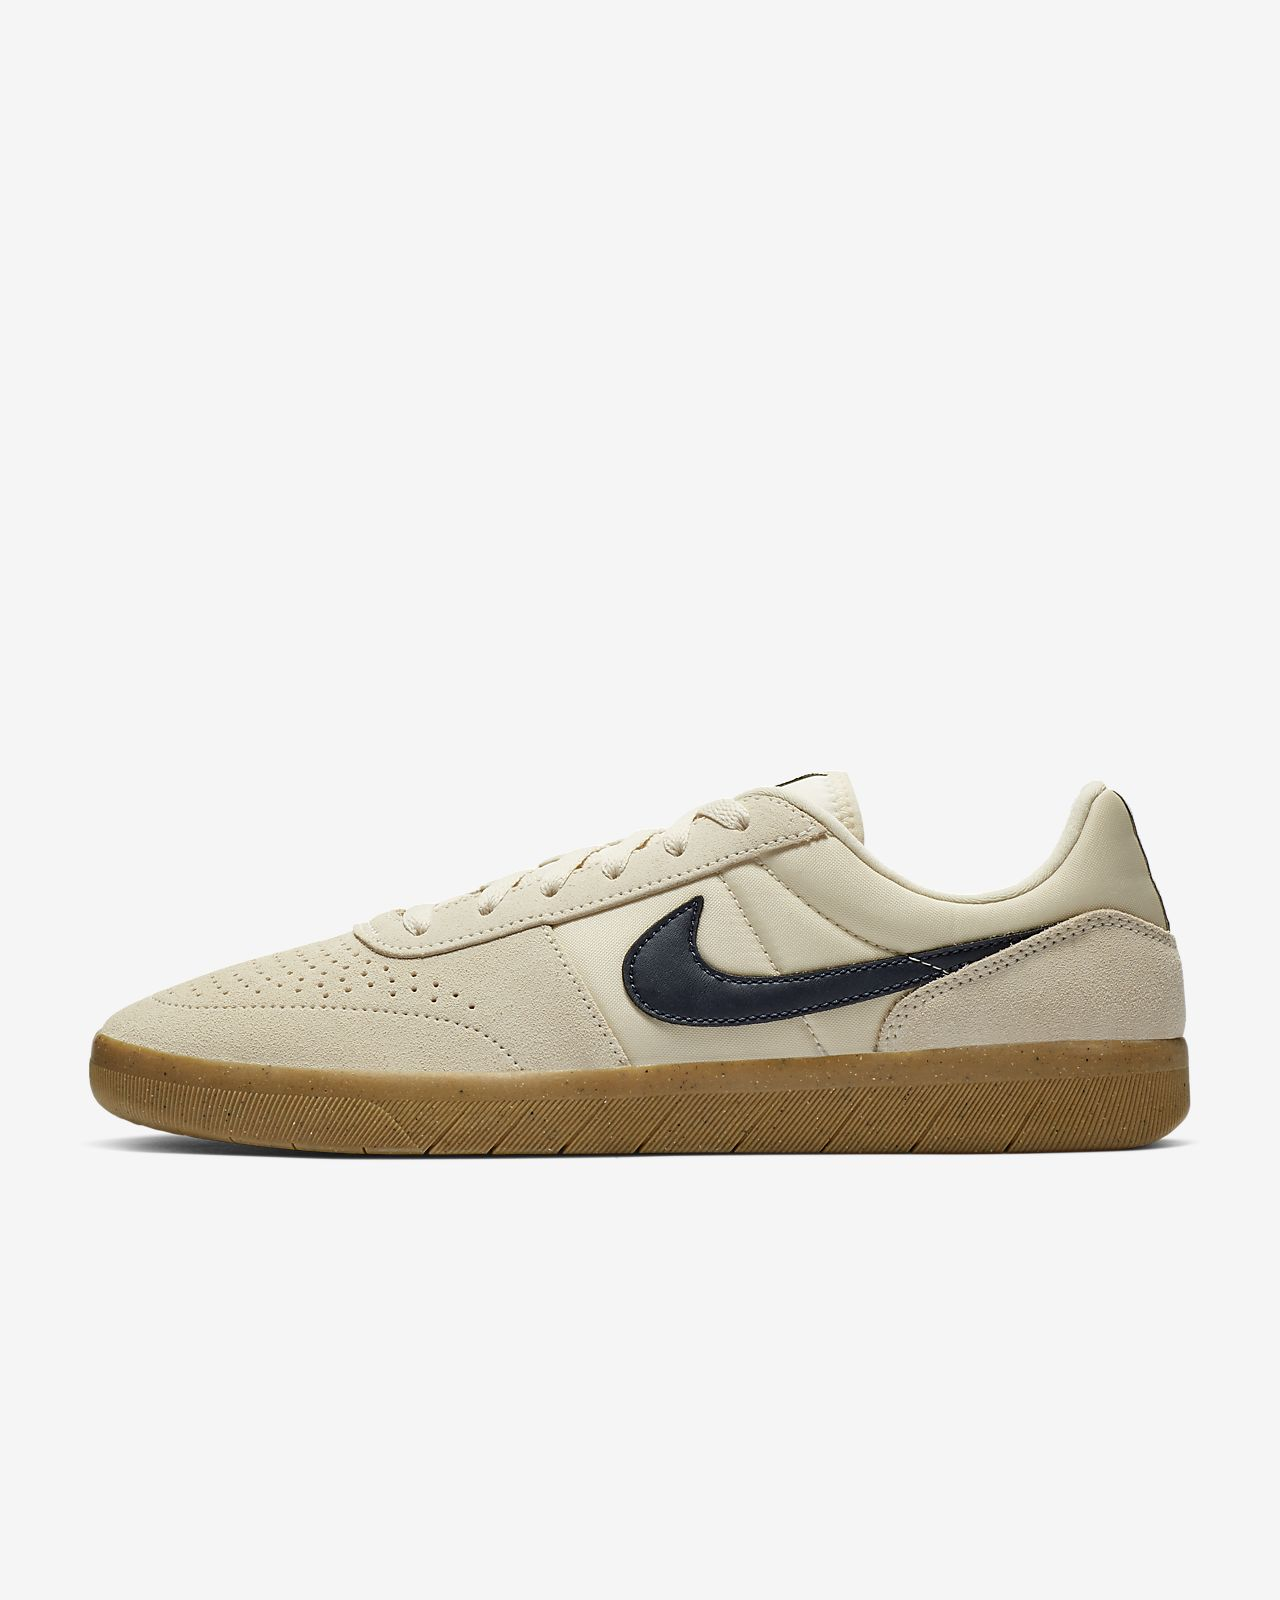 the latest cce57 96904 Low Resolution Męskie buty do skateboardingu Nike SB Team Classic Męskie  buty do skateboardingu Nike SB Team Classic